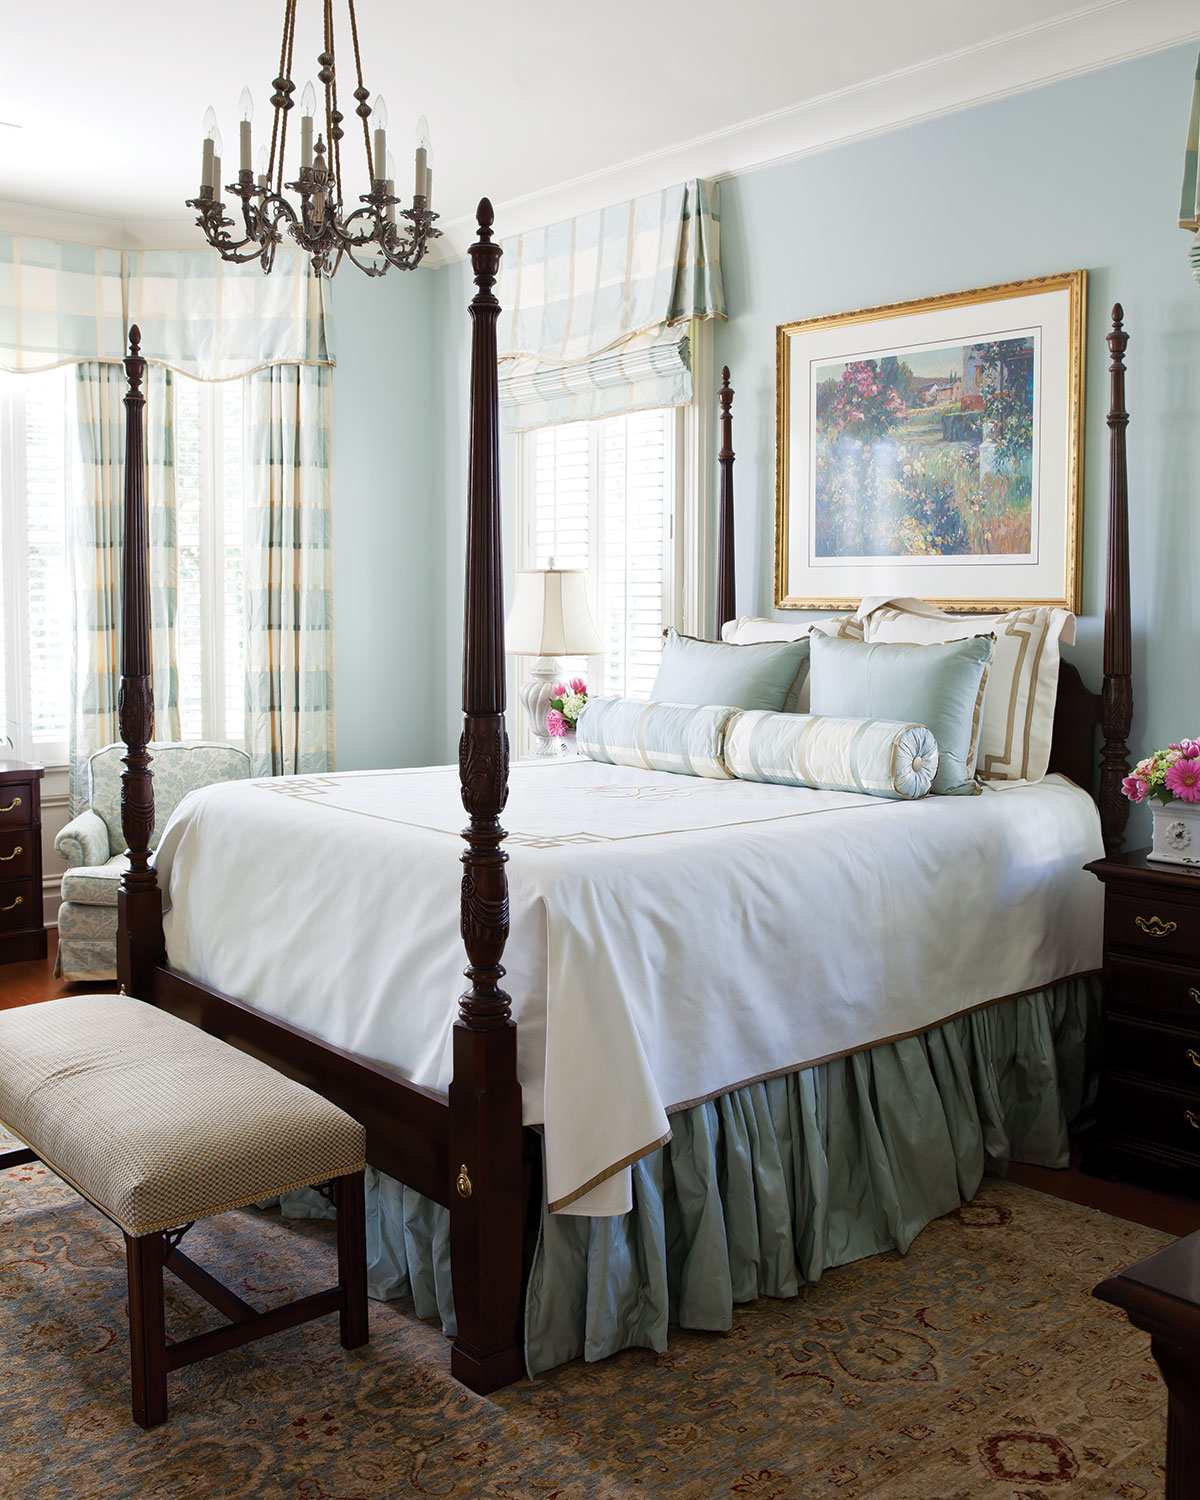 10 Dreamy Southern Bedrooms  Page 8 of 10  Southern Lady Magazine